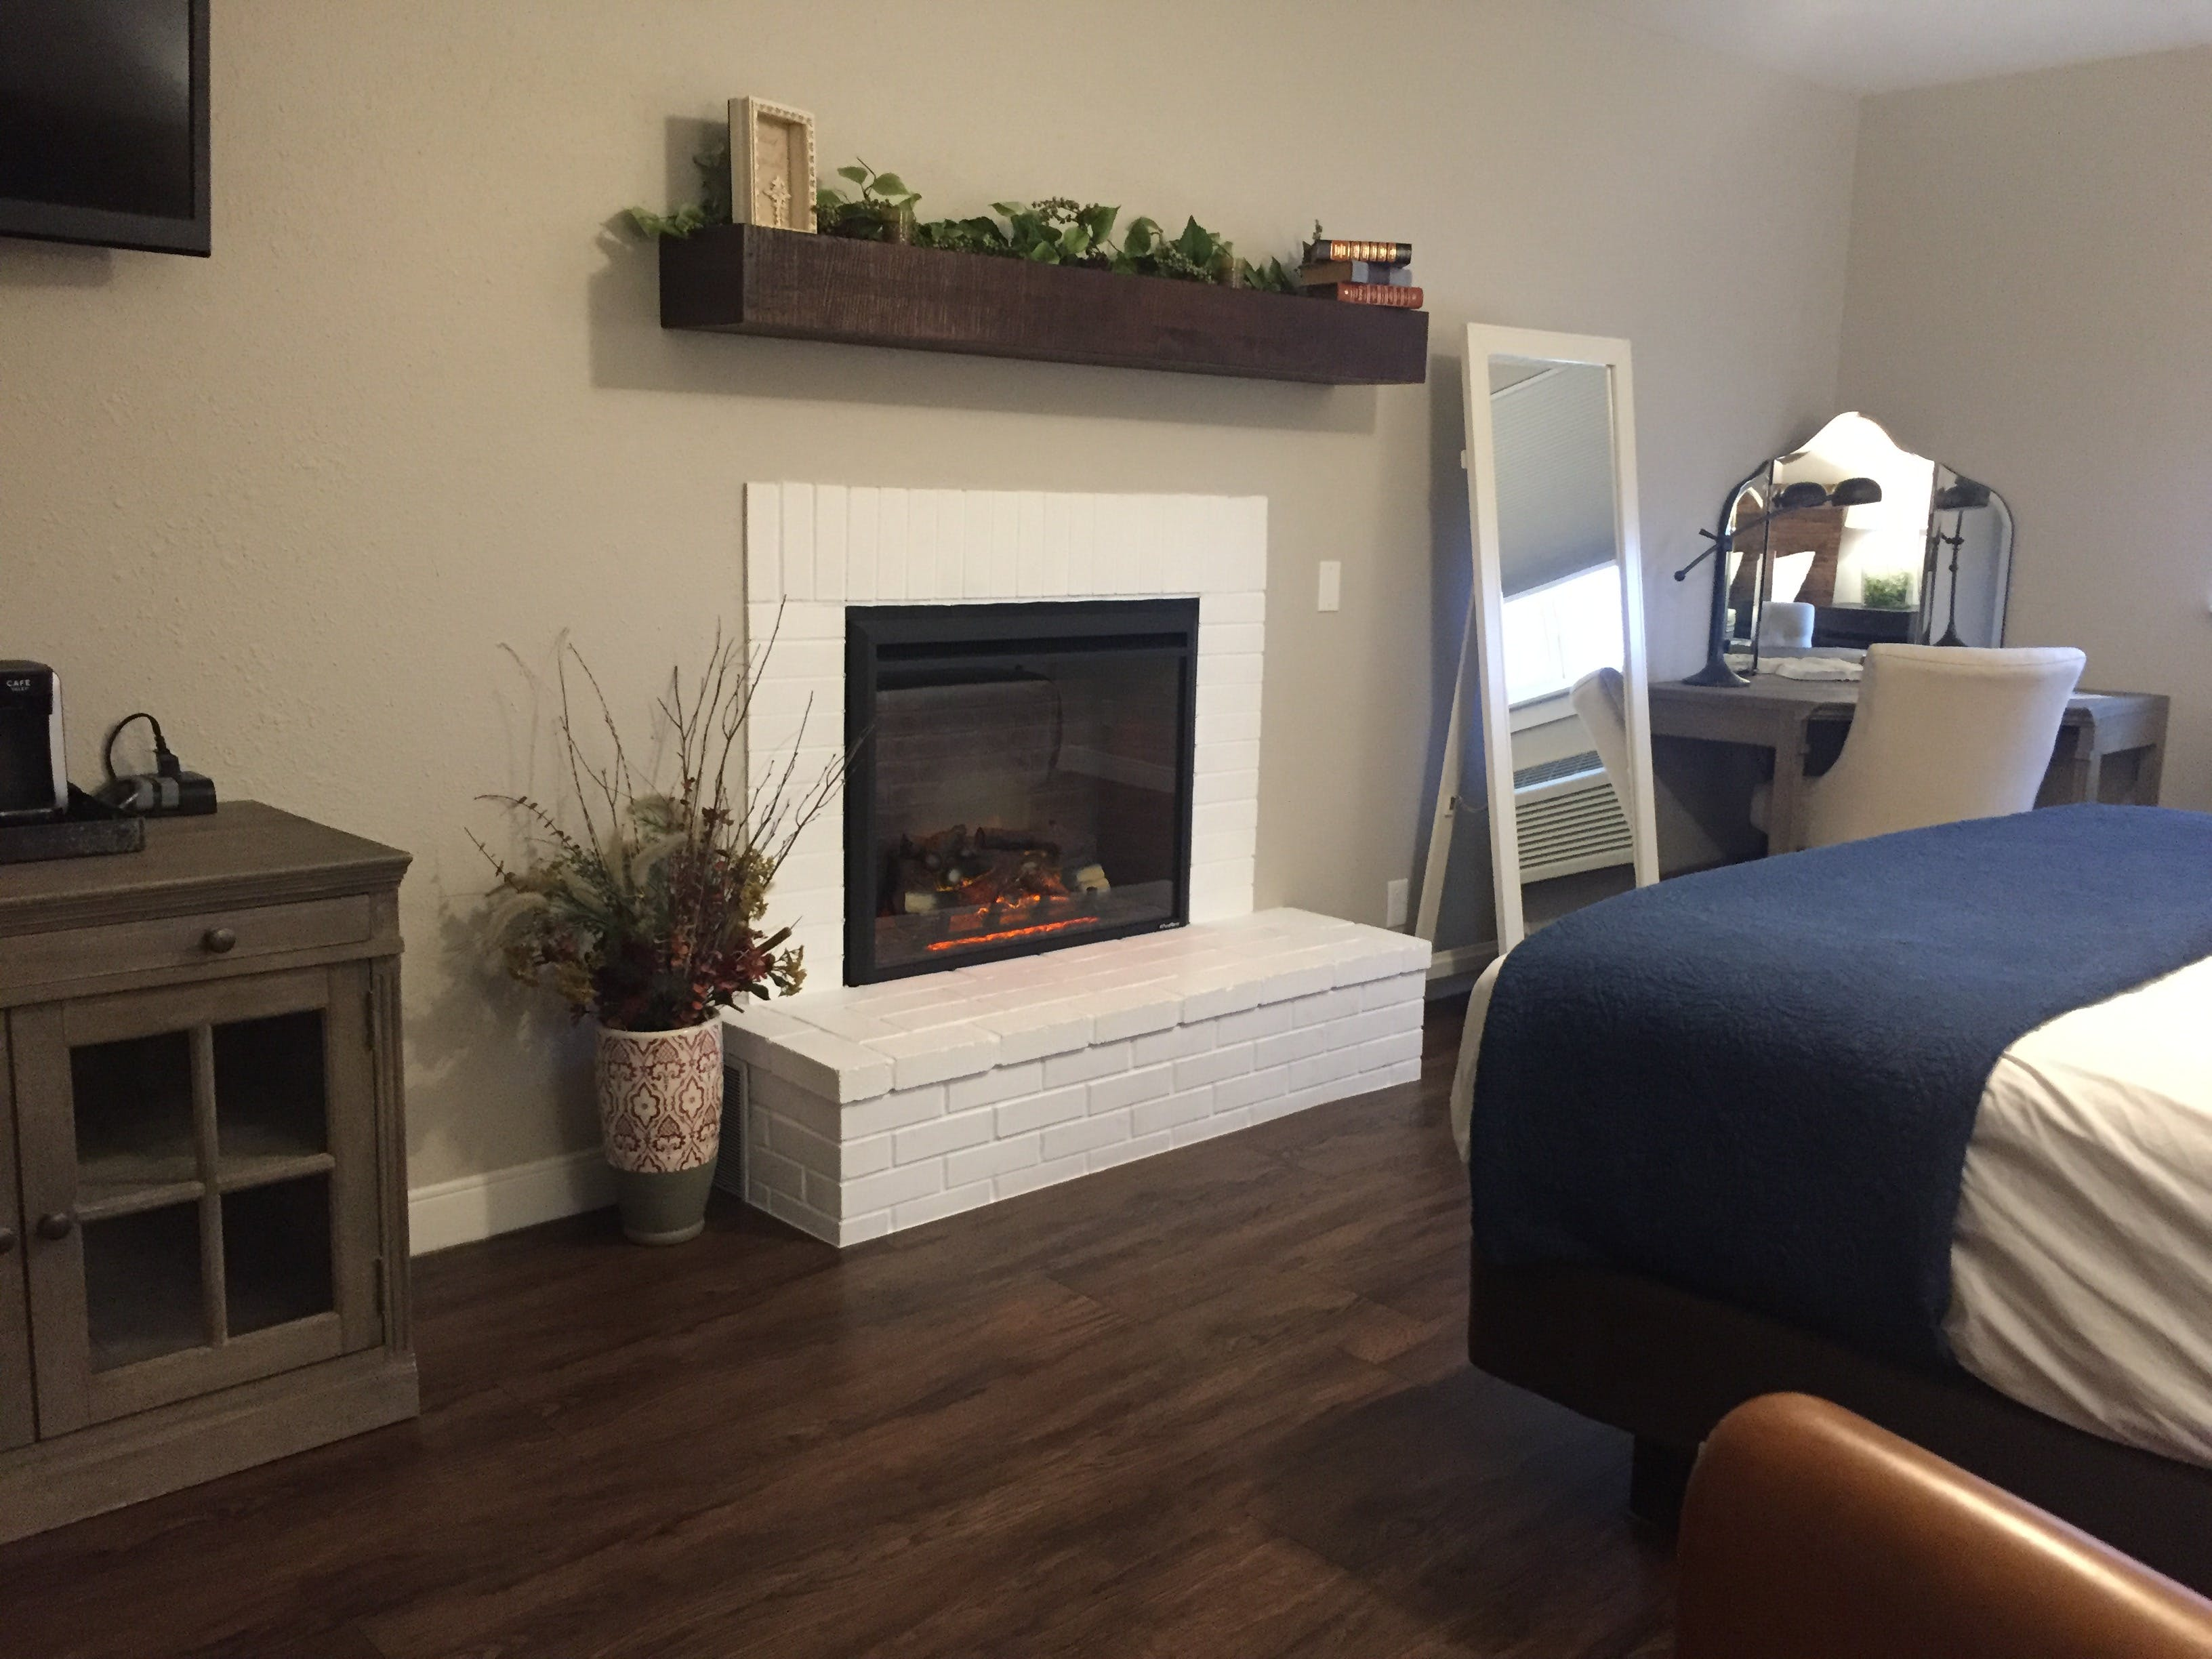 Semi-Suite King with Fireplace | Budget Lodging Saint Clair